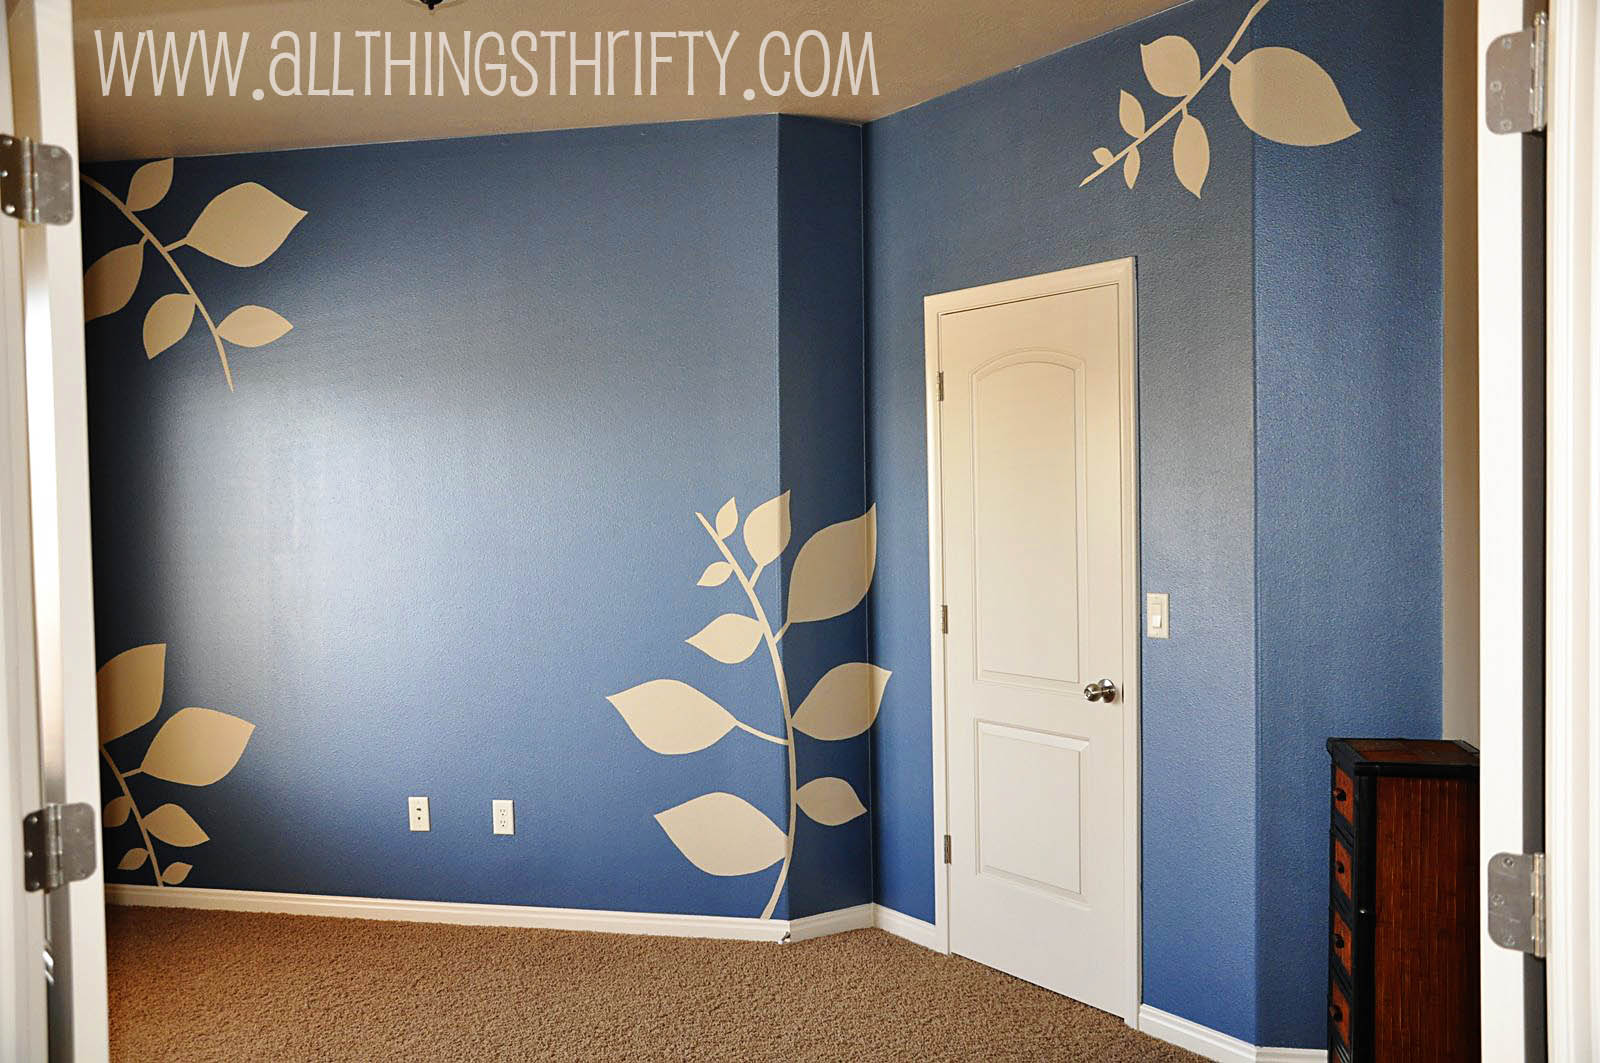 Paint Designs On Walls With Tape Ideas 1000 images about frog tape ideas on pinterest tape frogs and accent wall bedroom 1000 Ideas About Painters Tape Design On Pinterest Painters Tape Tape Wall And Wall Painting Stencils